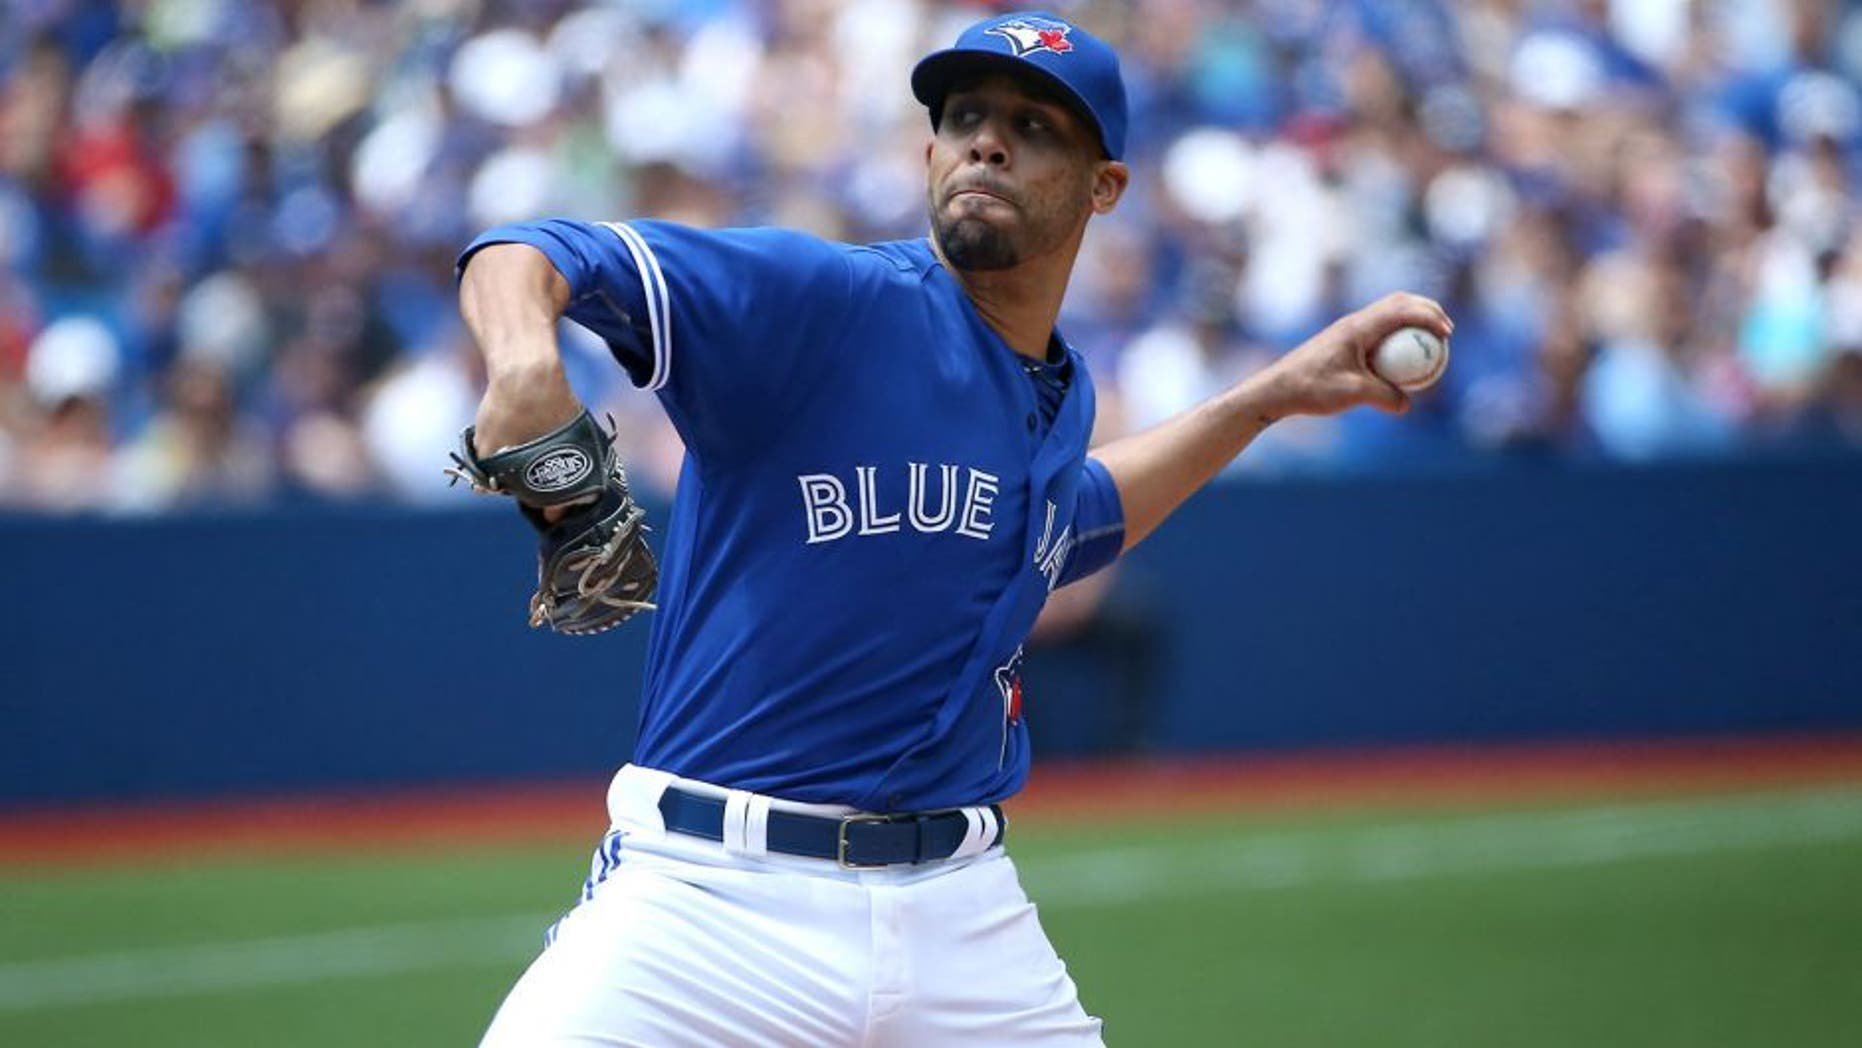 TORONTO, CANADA - AUGUST 3: David Price #14 of the Toronto Blue Jays delivers a pitch in the second inning during MLB game action against the Minnesota Twins on August 3, 2015 at Rogers Centre in Toronto, Ontario, Canada. (Photo by Tom Szczerbowski/Getty Images)